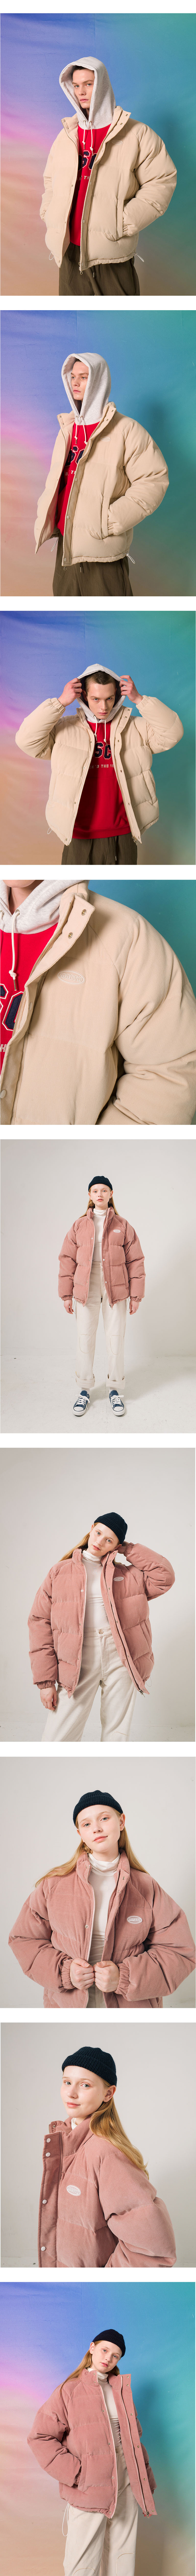 메인부스(MAINBOOTH) Duck Down Corduroy Jumper(PINK)